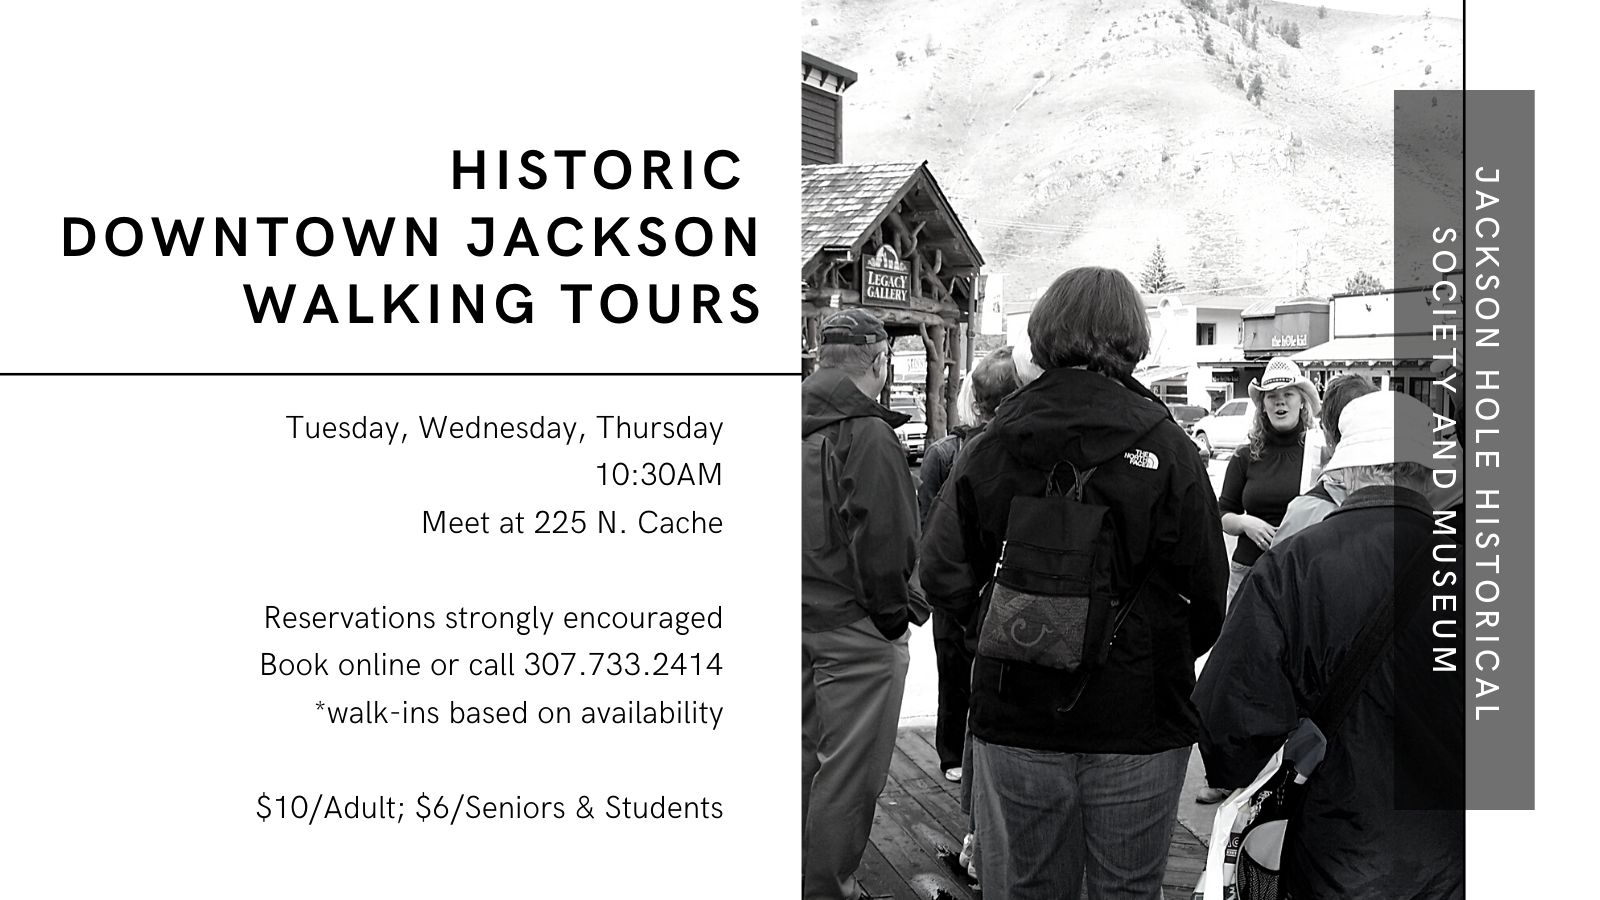 Dowtown Historic Jackson Hole Walking Tours by Appointment